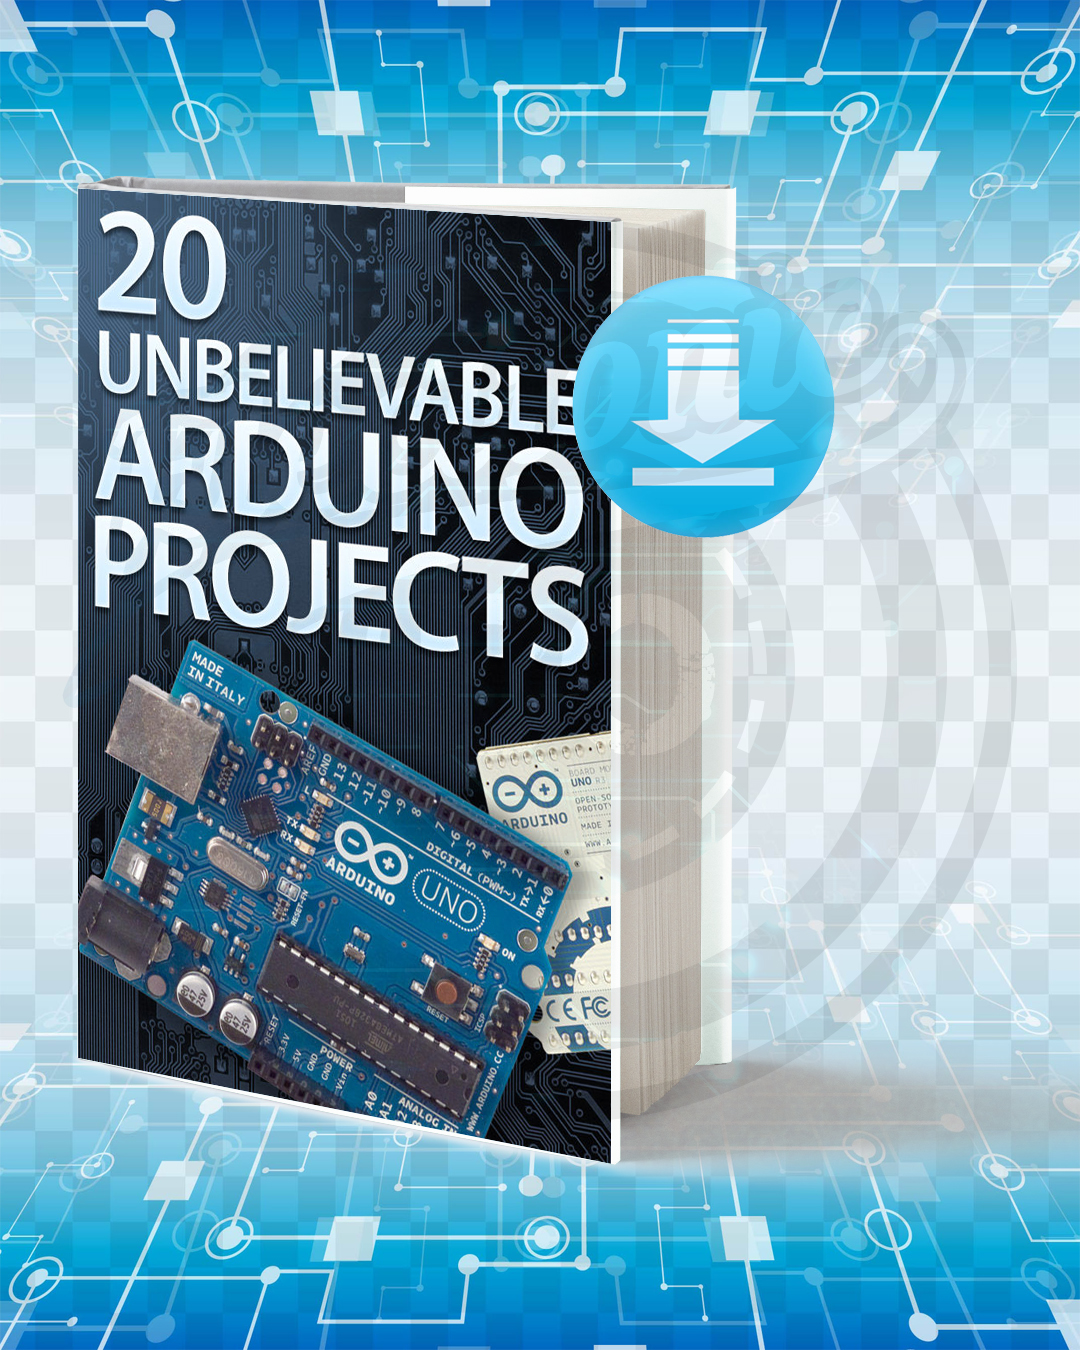 Free Book 20 Unbelievable Arduino Projects pdf.